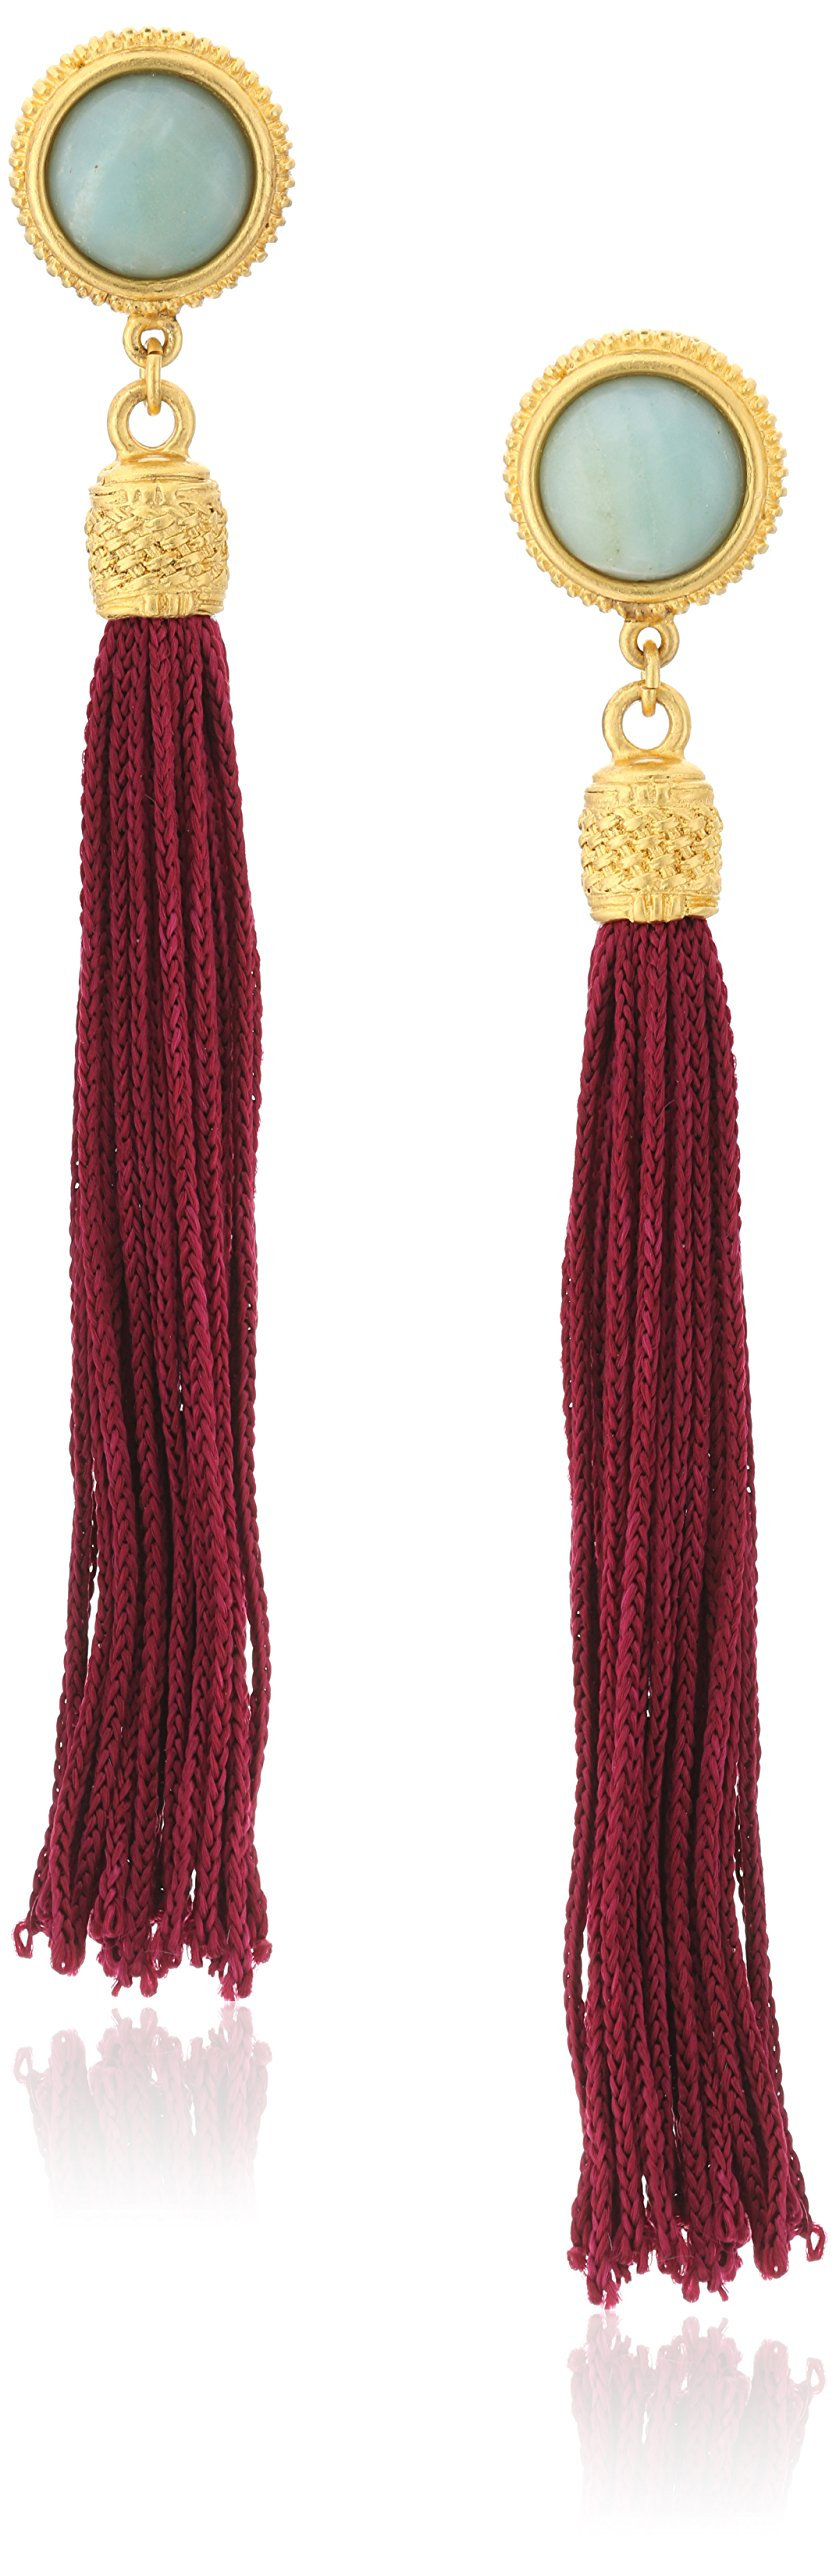 Ben-Amun Jewelry Silk Road Stone Gold-Plated Tassel Clip-On Earrings